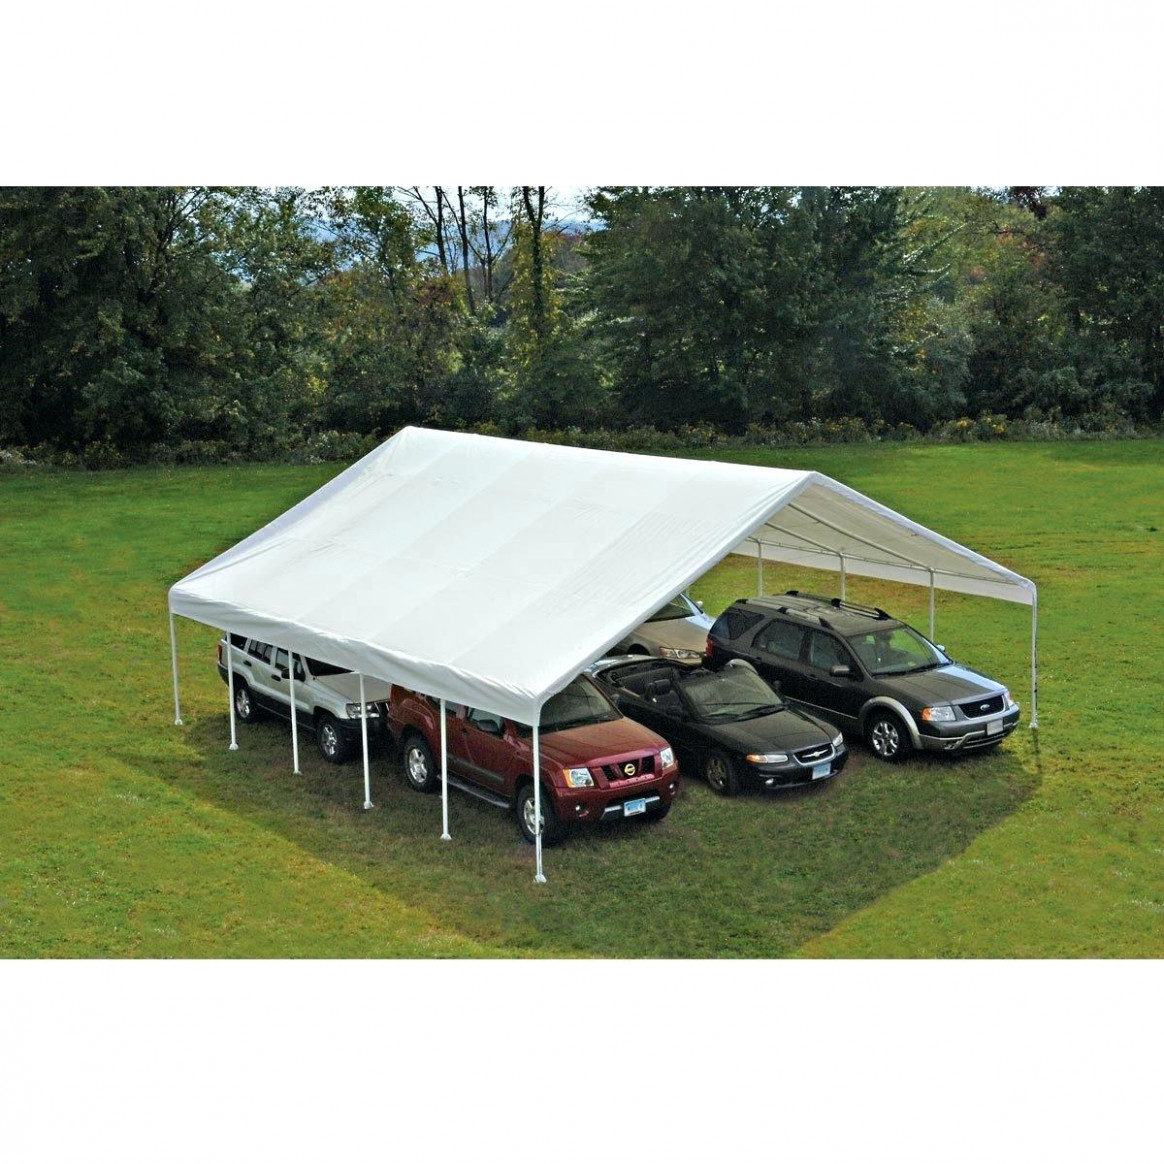 Shelterlogic Carport Angle View What Is Car Canopy Max Ap Carport Canopy Cover